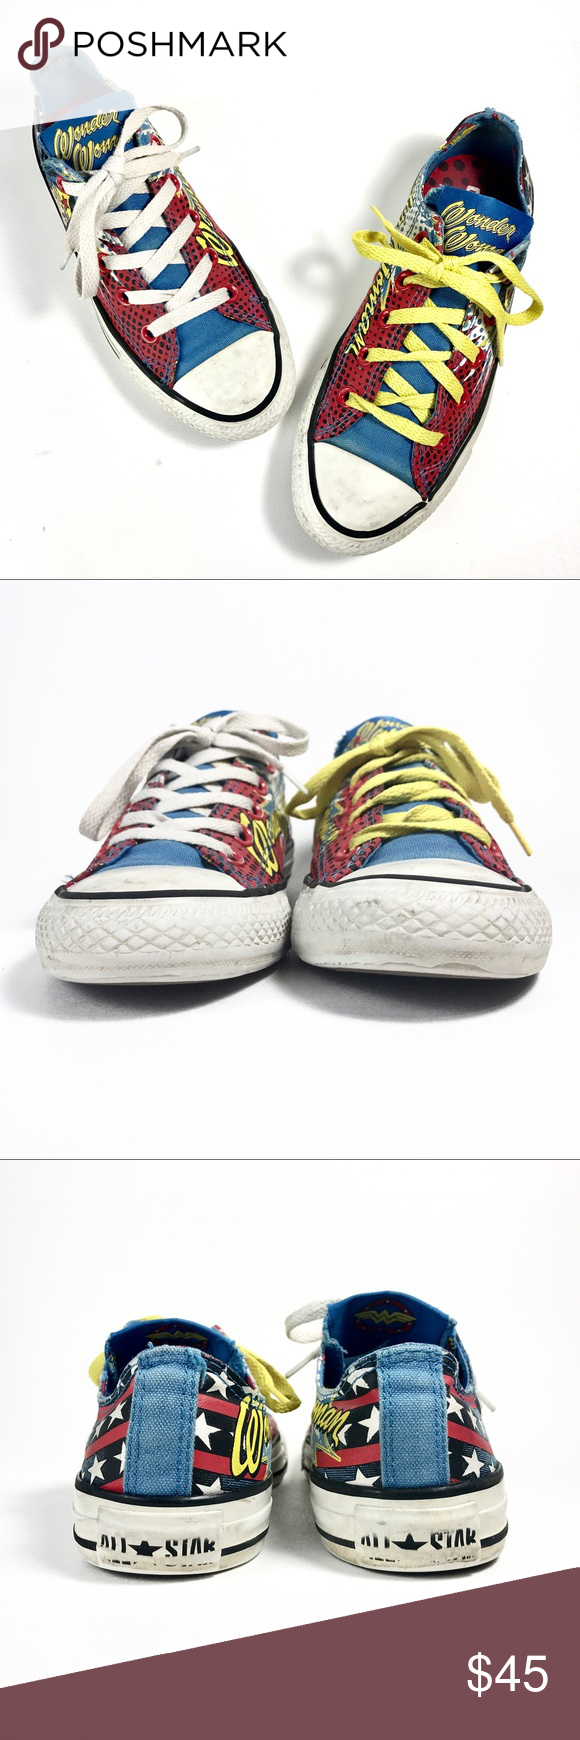 31f4ffcfb9fa Converse All Star Wonder Woman Unisex Lp Sneakers Condition  Good pre-owned  condition!